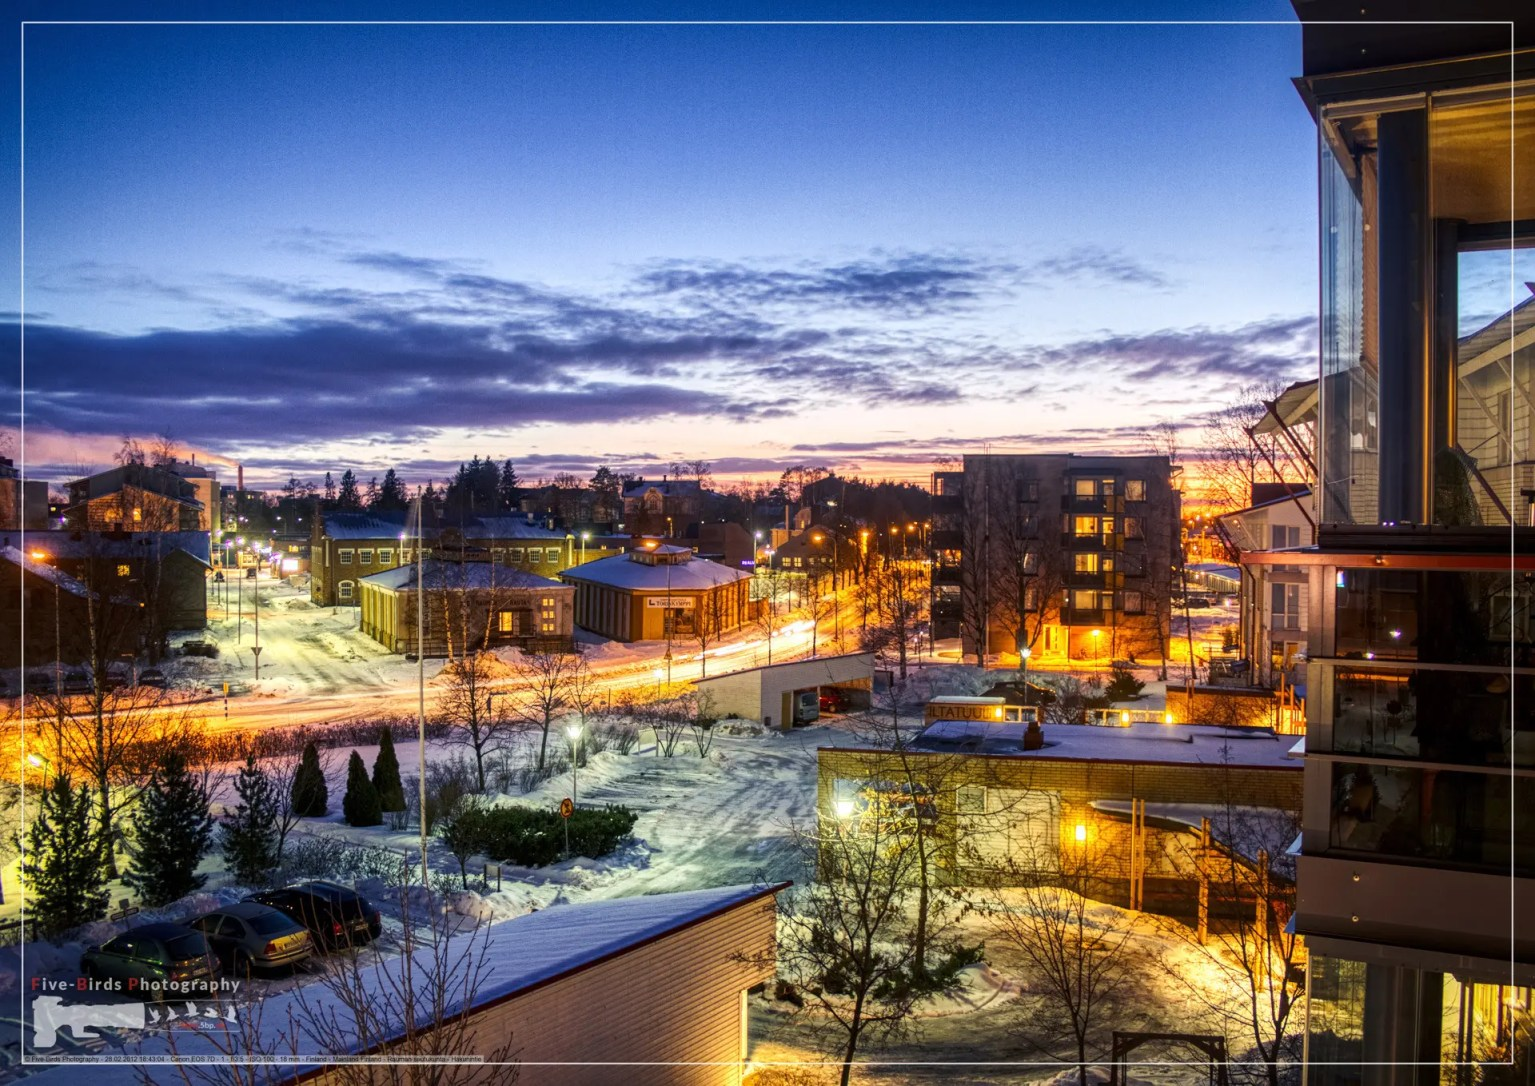 Night shot over the rooftops of the snowy Finnish town of Rauma